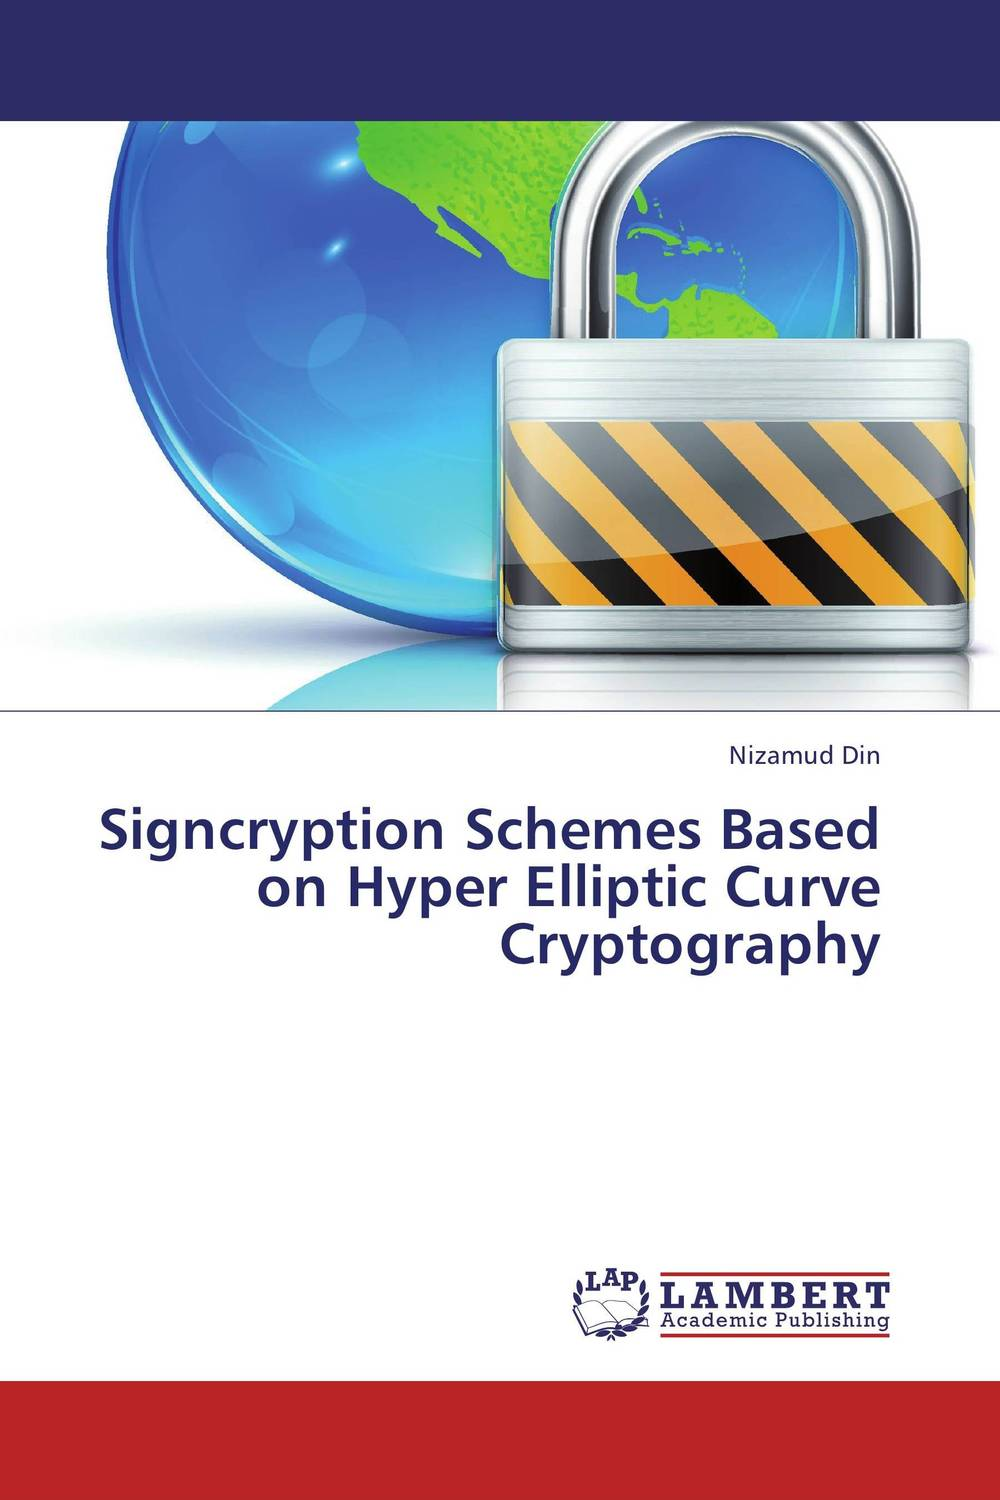 Signcryption Schemes Based on Hyper Elliptic Curve Cryptography elliptic curve digital signatures in rsa hardware